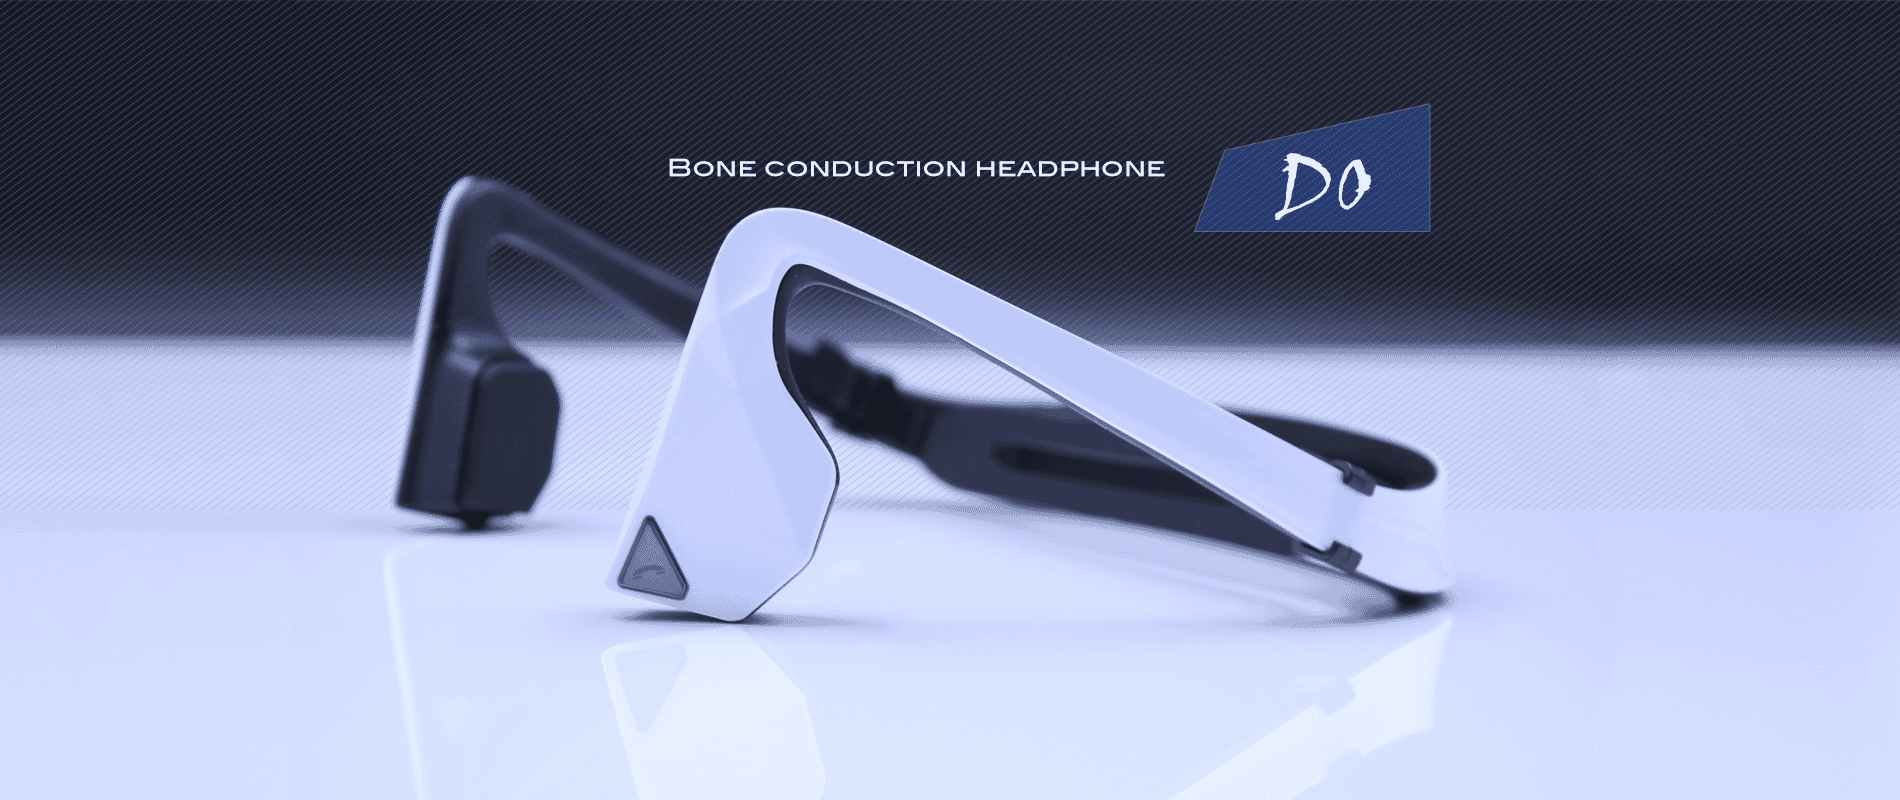 Review Digicare DO: auriculares bluetooth estéreo con tecnología Bone Conduction